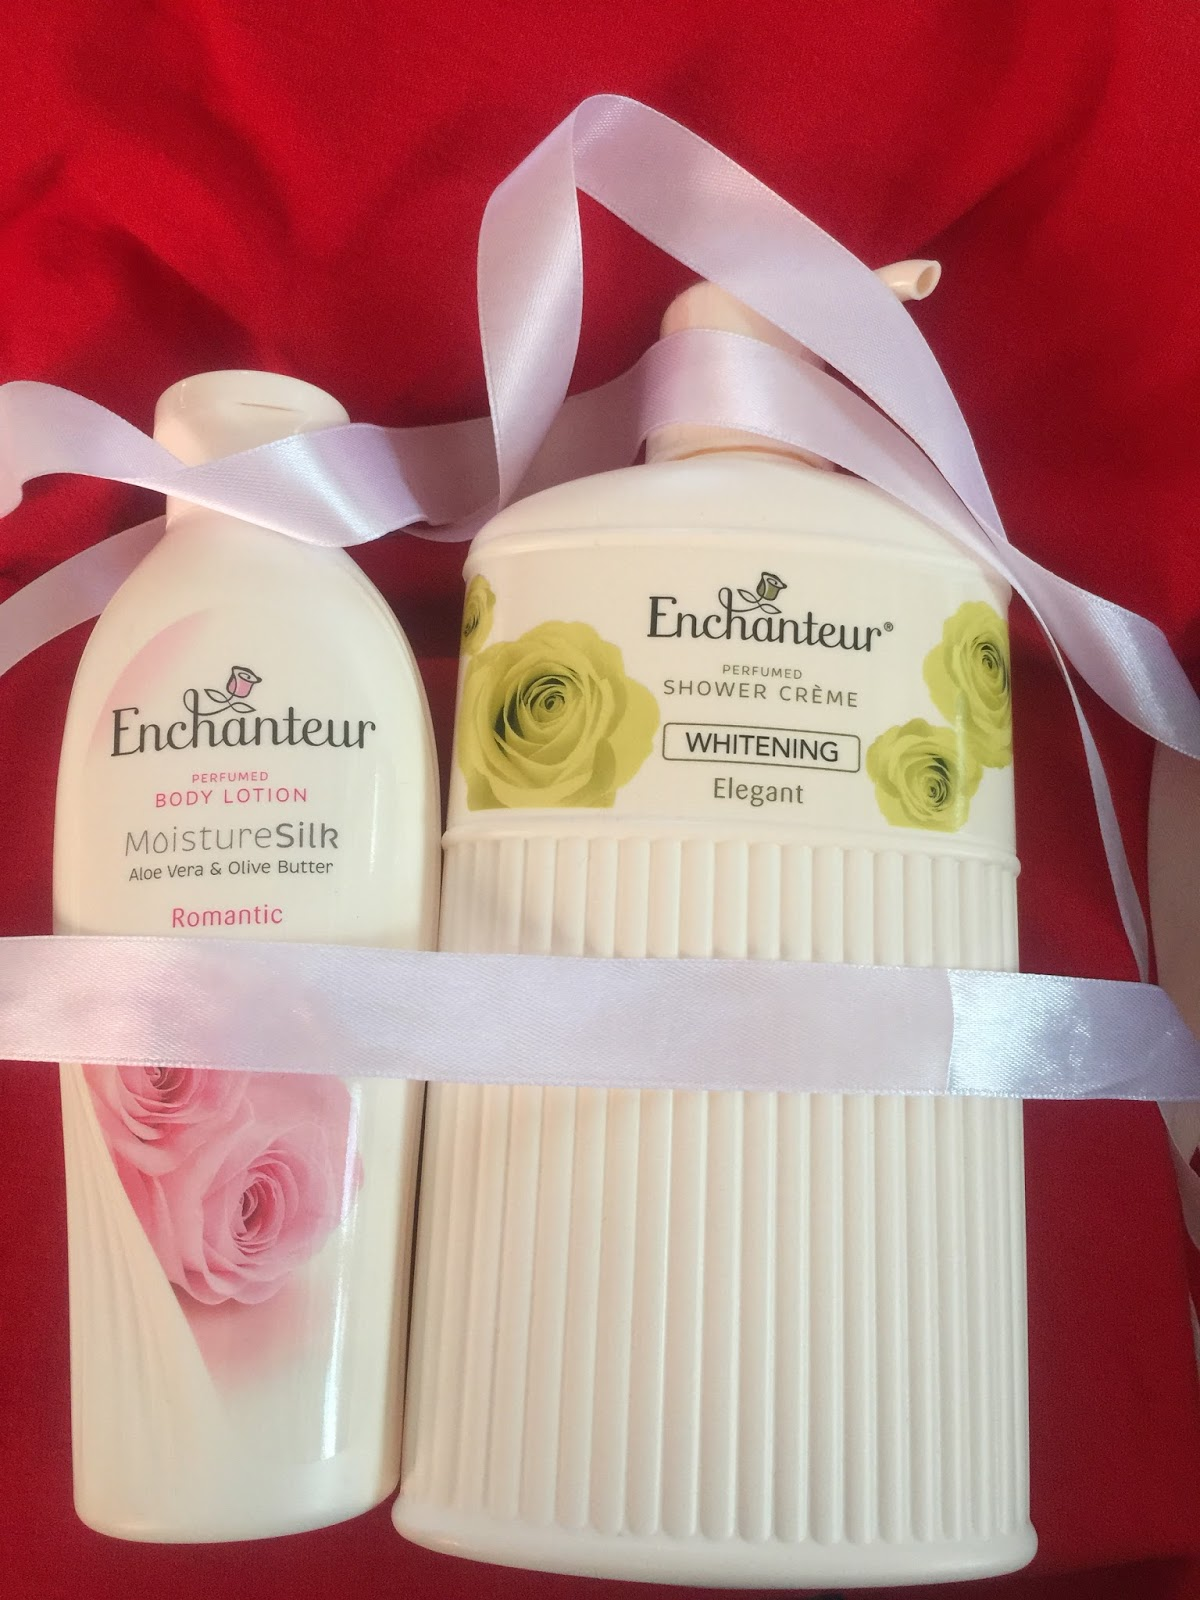 produk enchanteur, harga enchanteur, price, wangian, lotion, gel mandian, eu de toilette